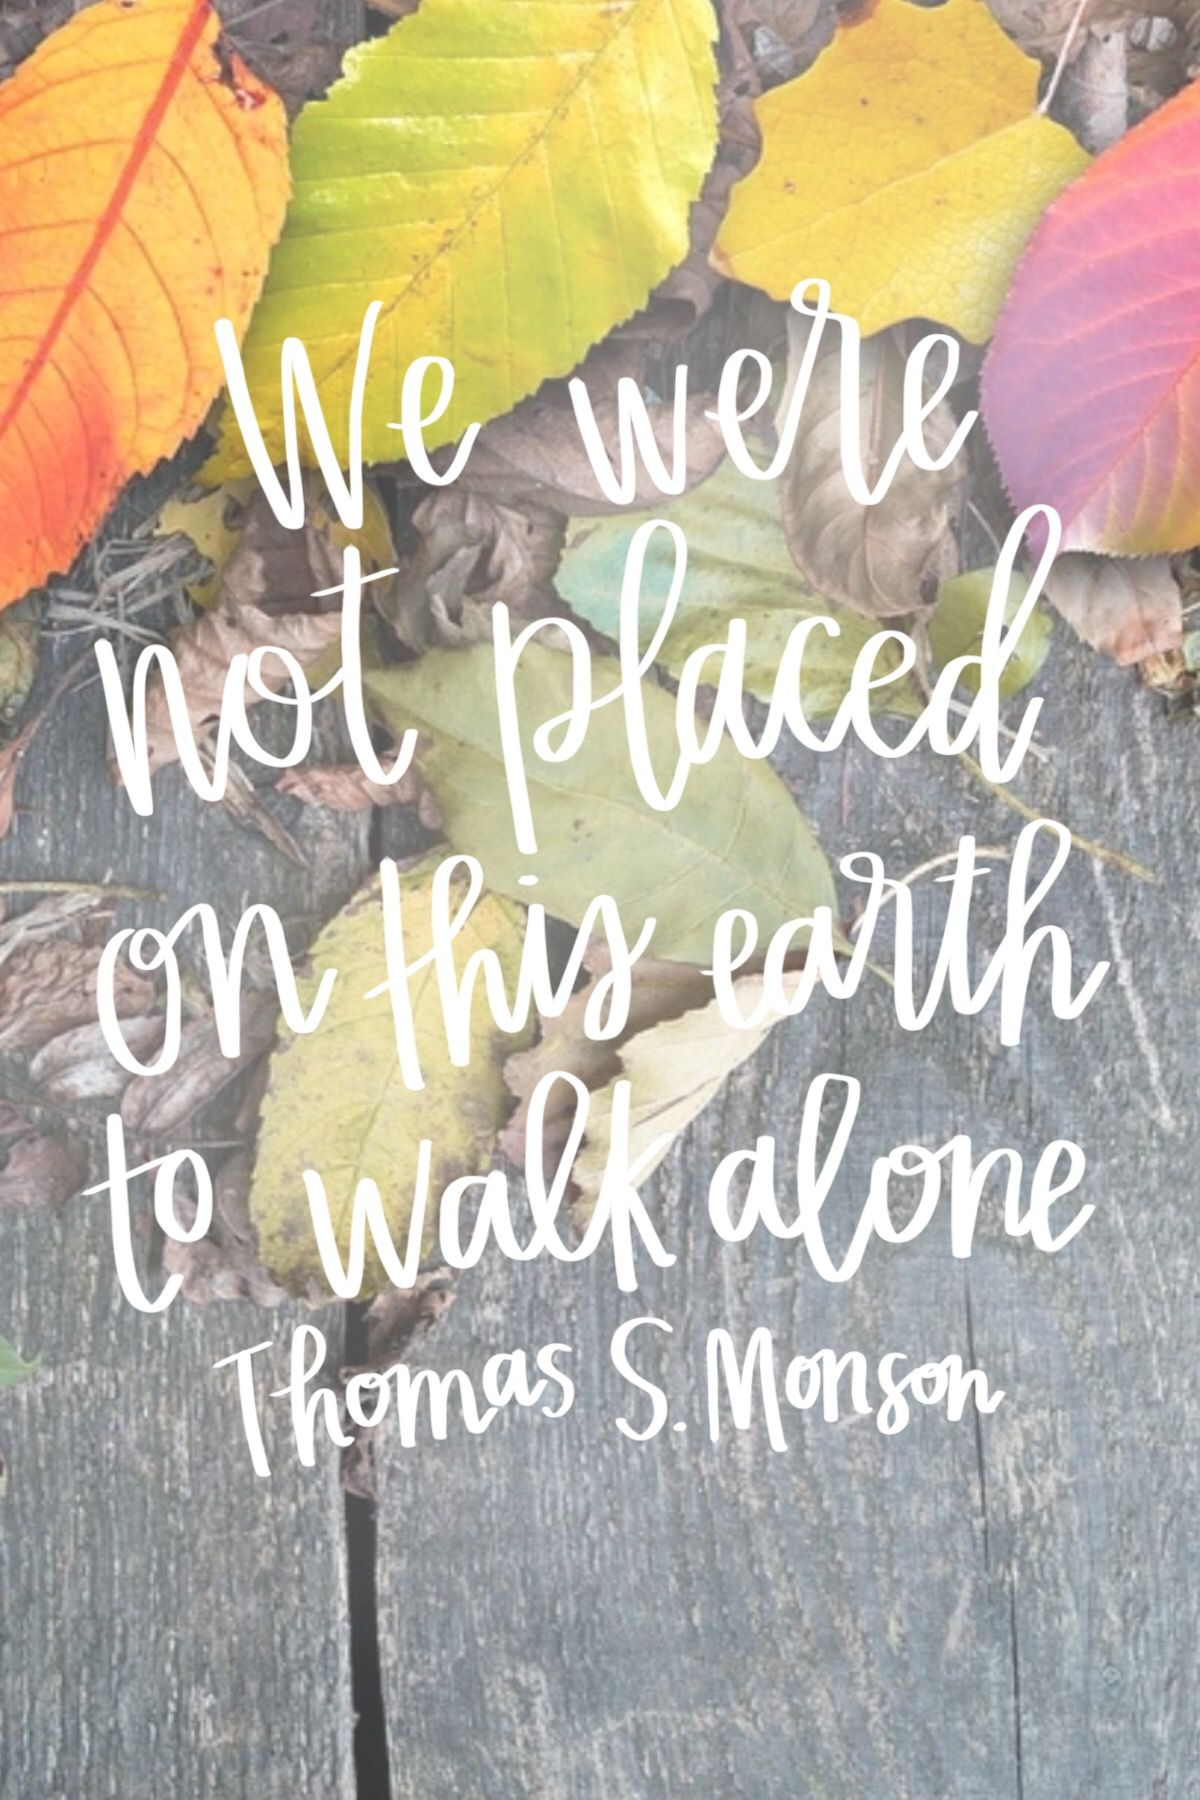 "Mormon Quotes Amusing We Were Not Placed On This Earth To Walk Alone"" Thomas Smonson"